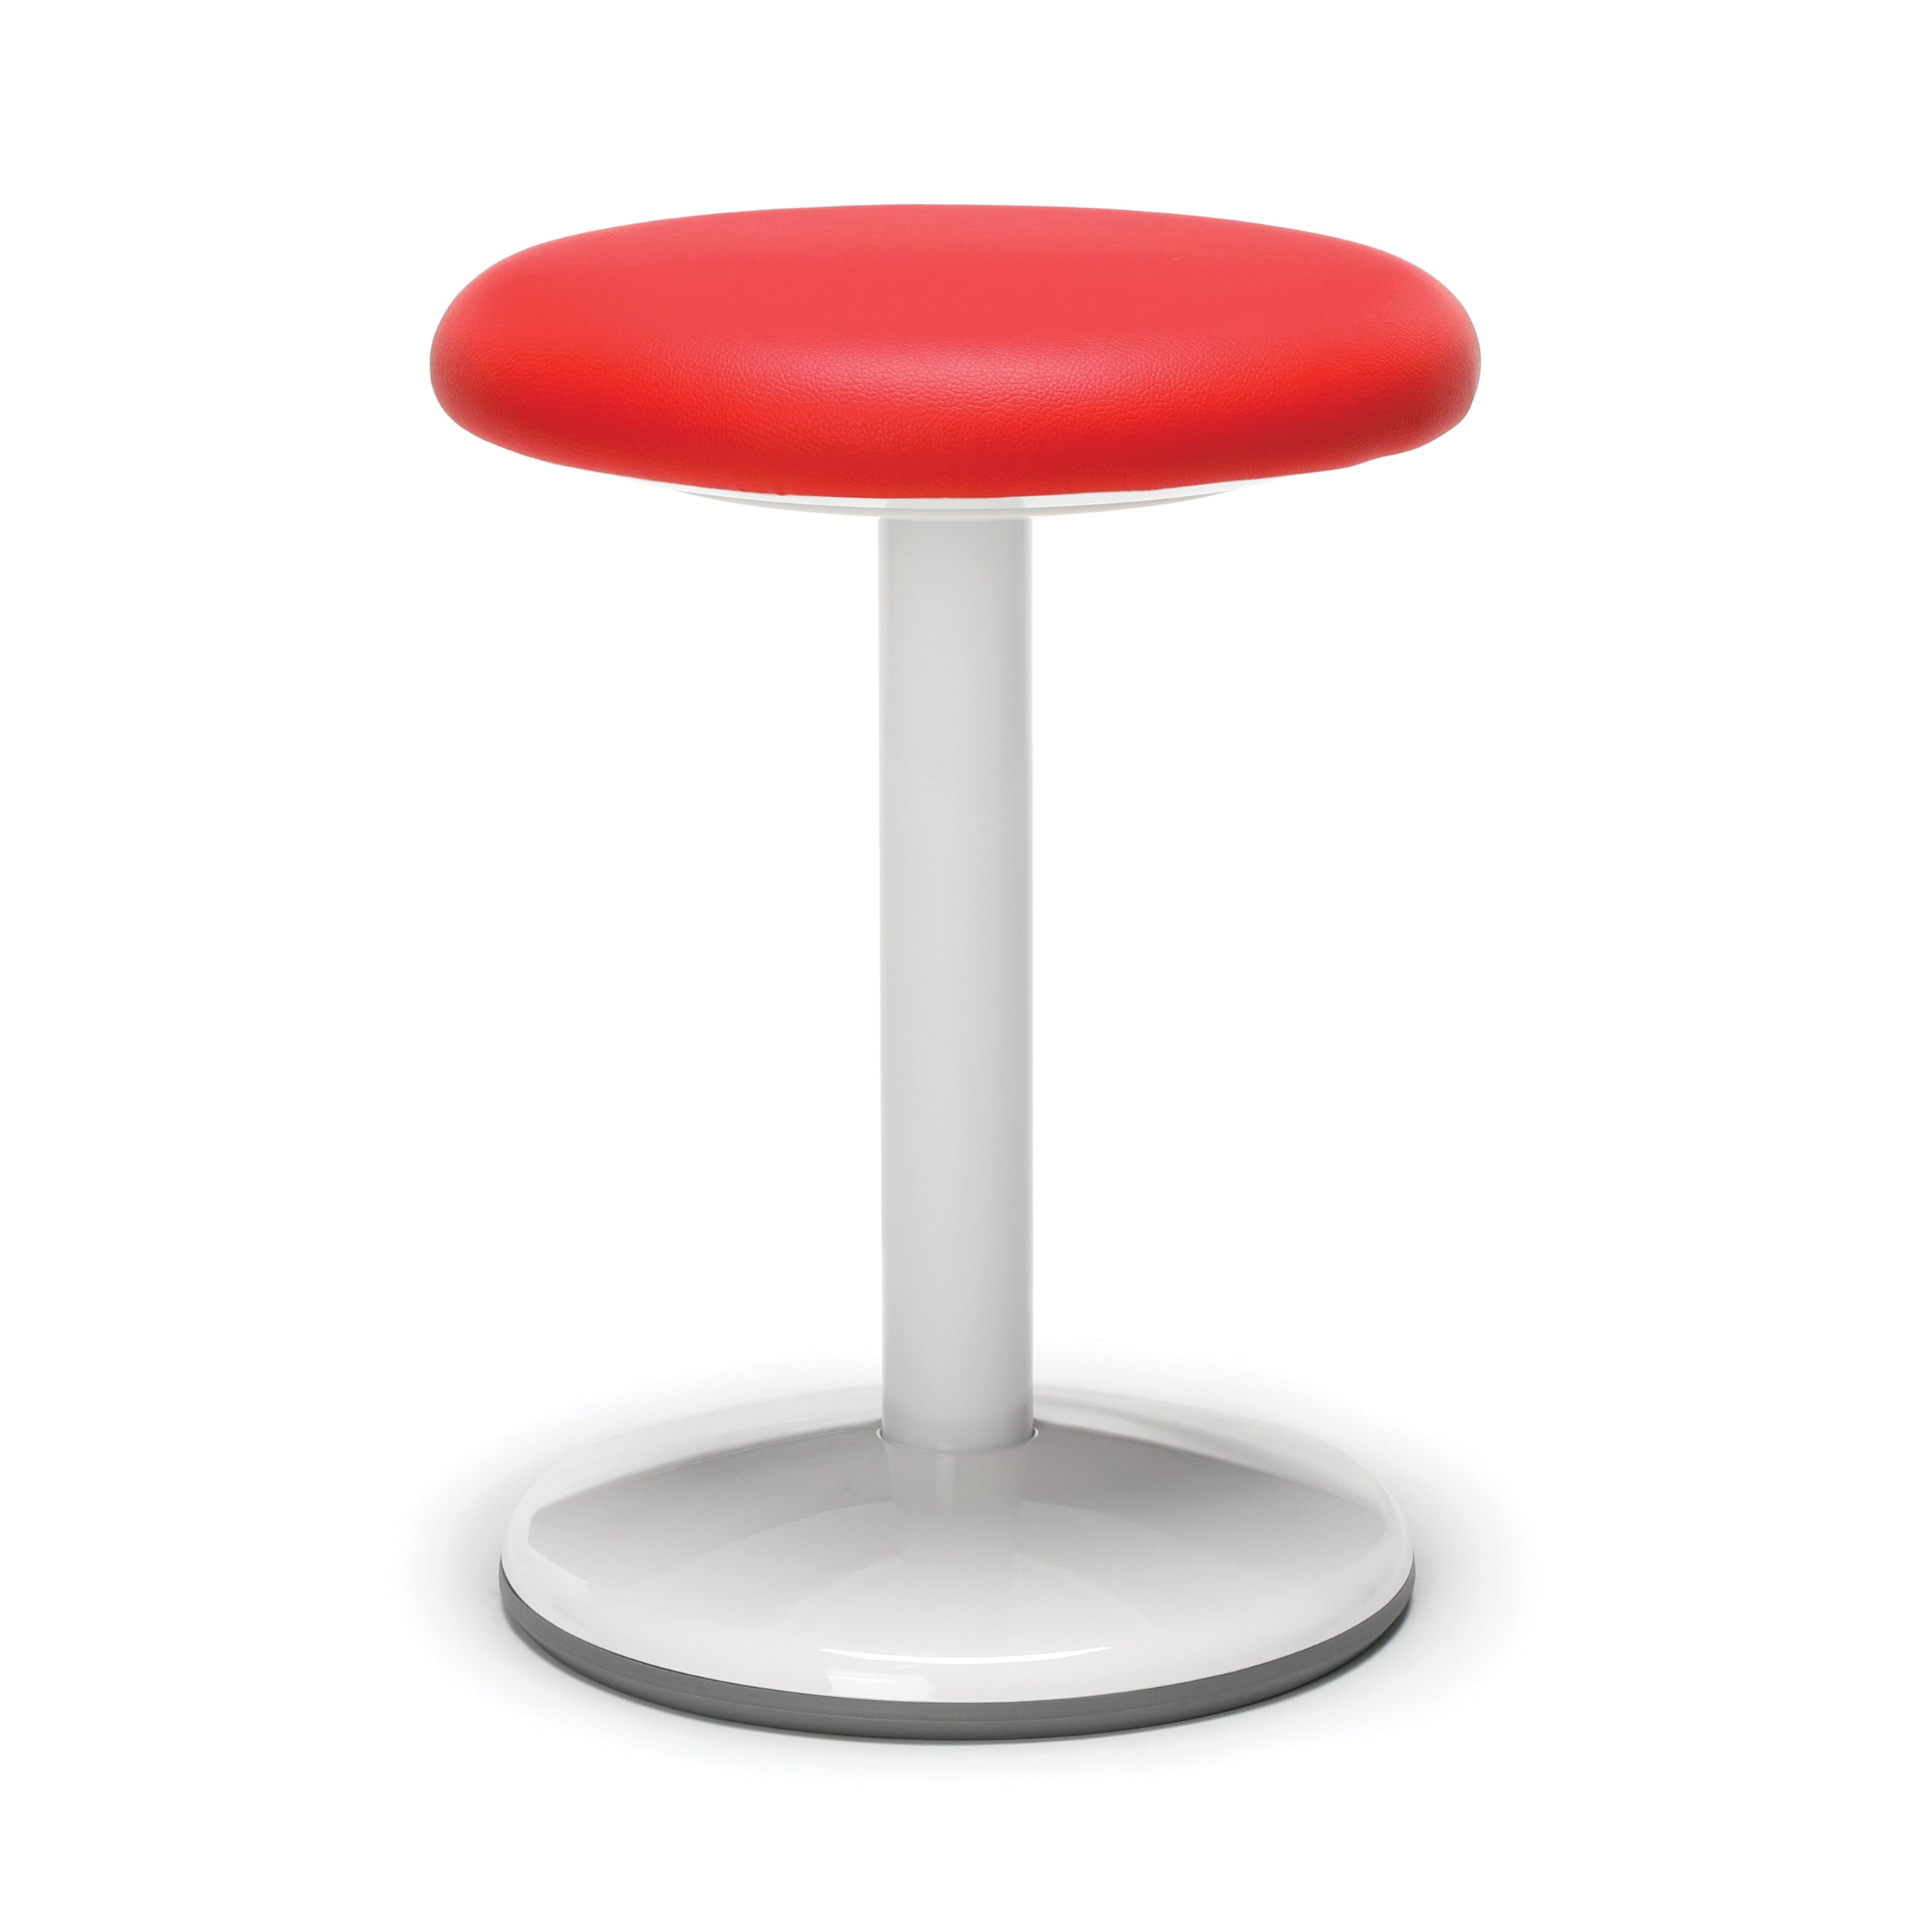 Ofminc Model 2818-STA-V Orbit 18 Inch Vinyl Static Stool